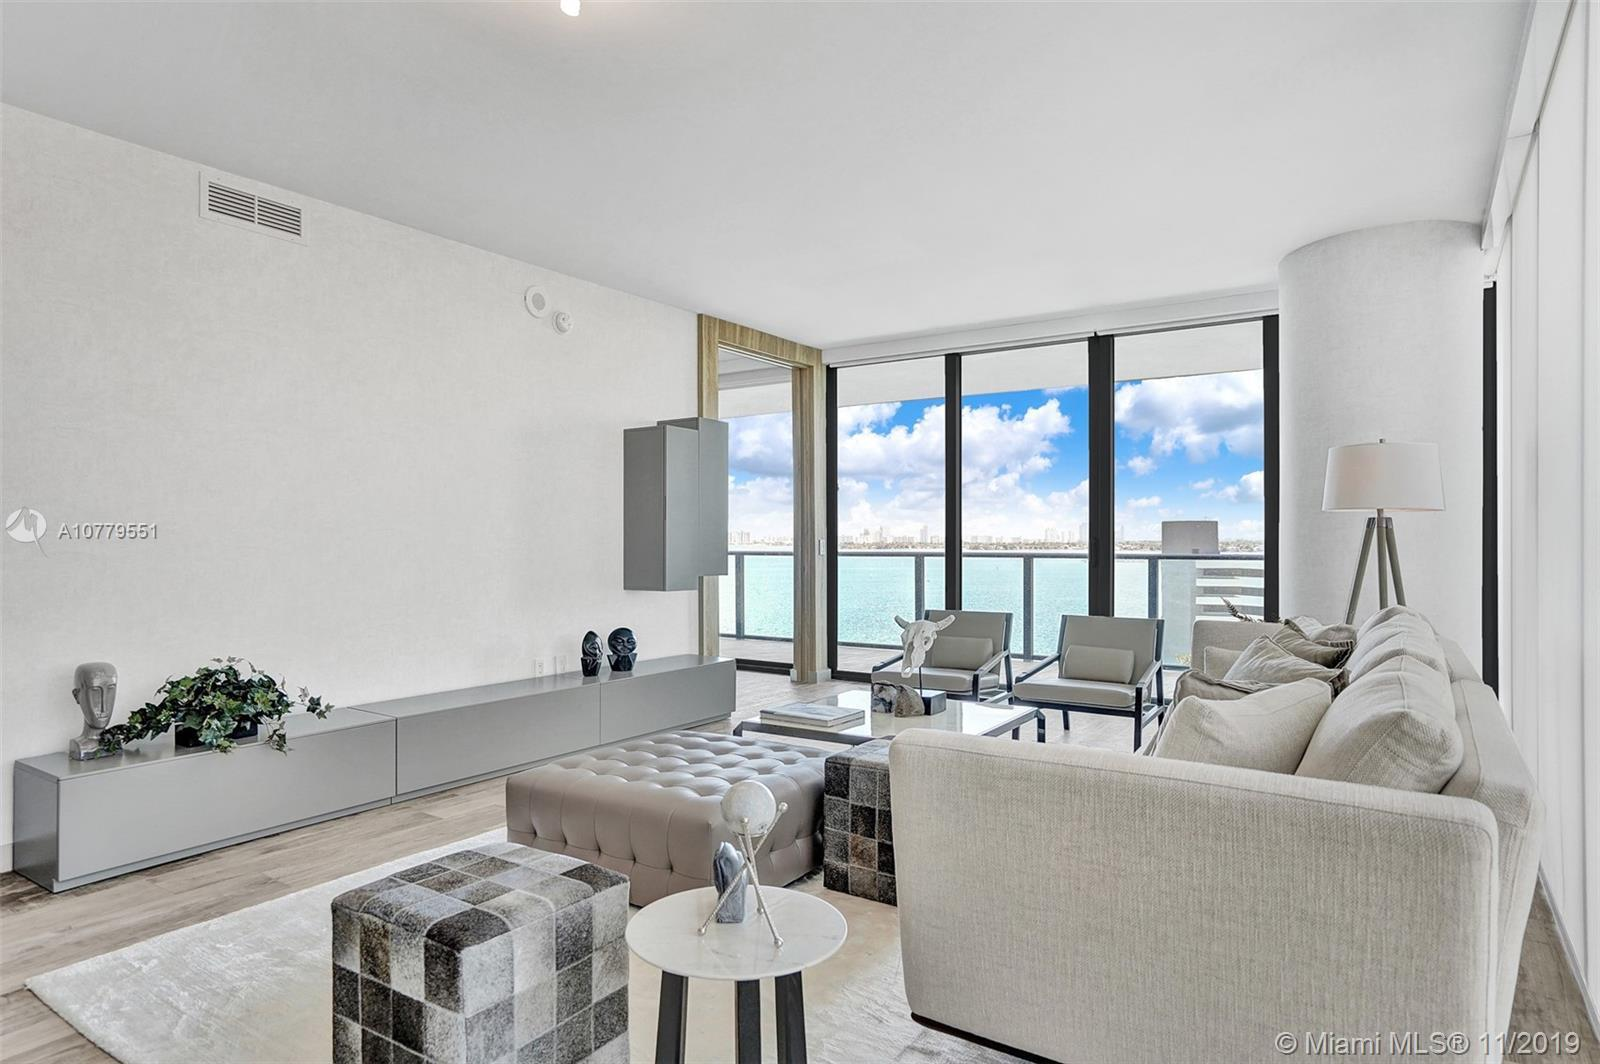 More than $140K in upgrades! Move In Ready!This CORNER WATER FRONT unit was designed for the most ex